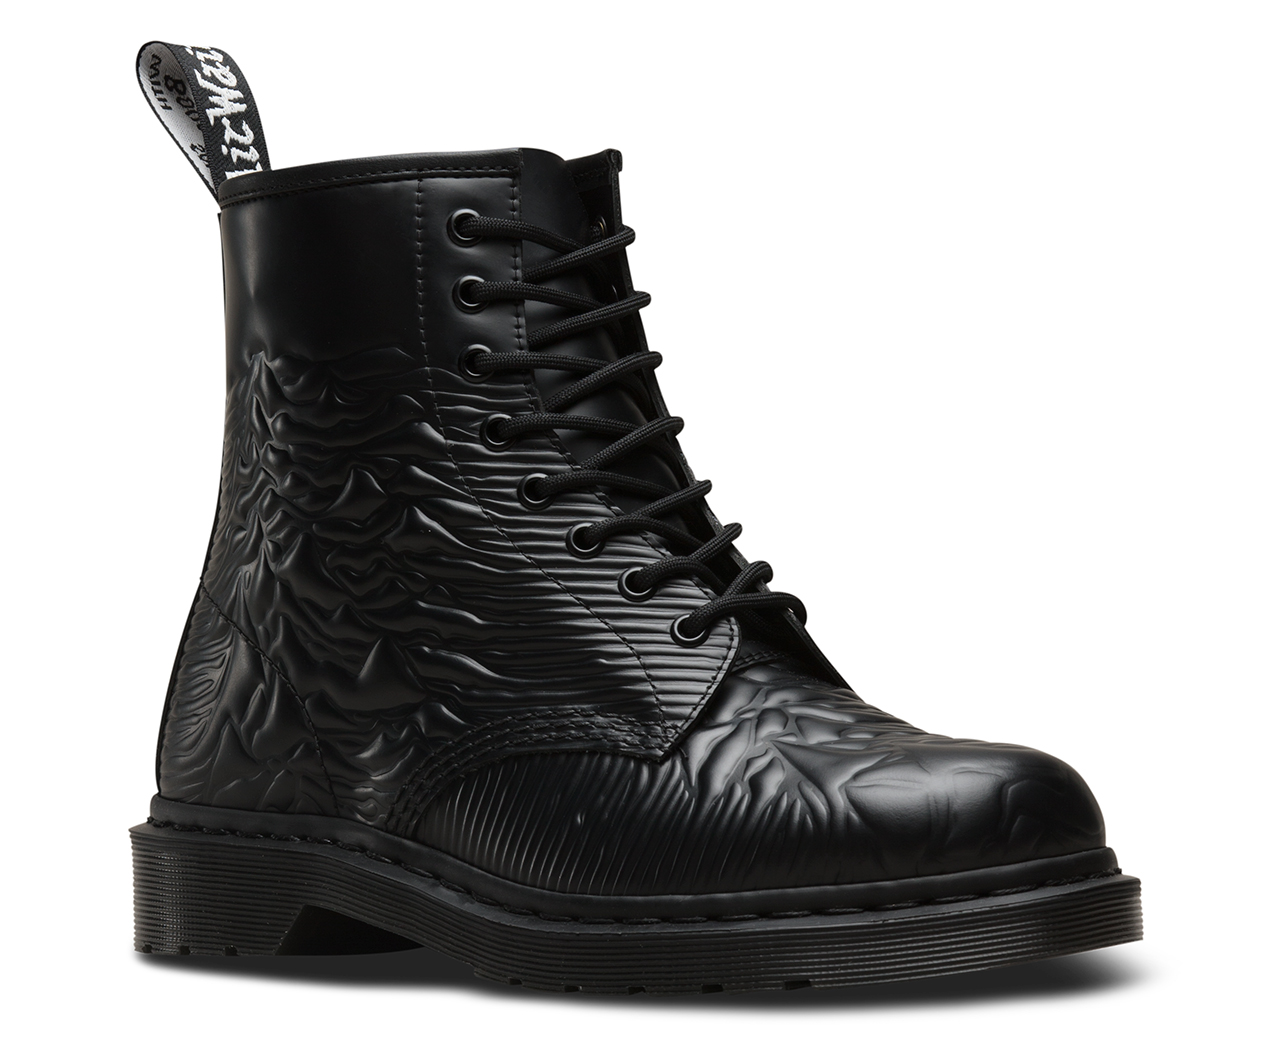 Dr. Martens 1460 Unknown Pleasures Boot CQvW4aQ4